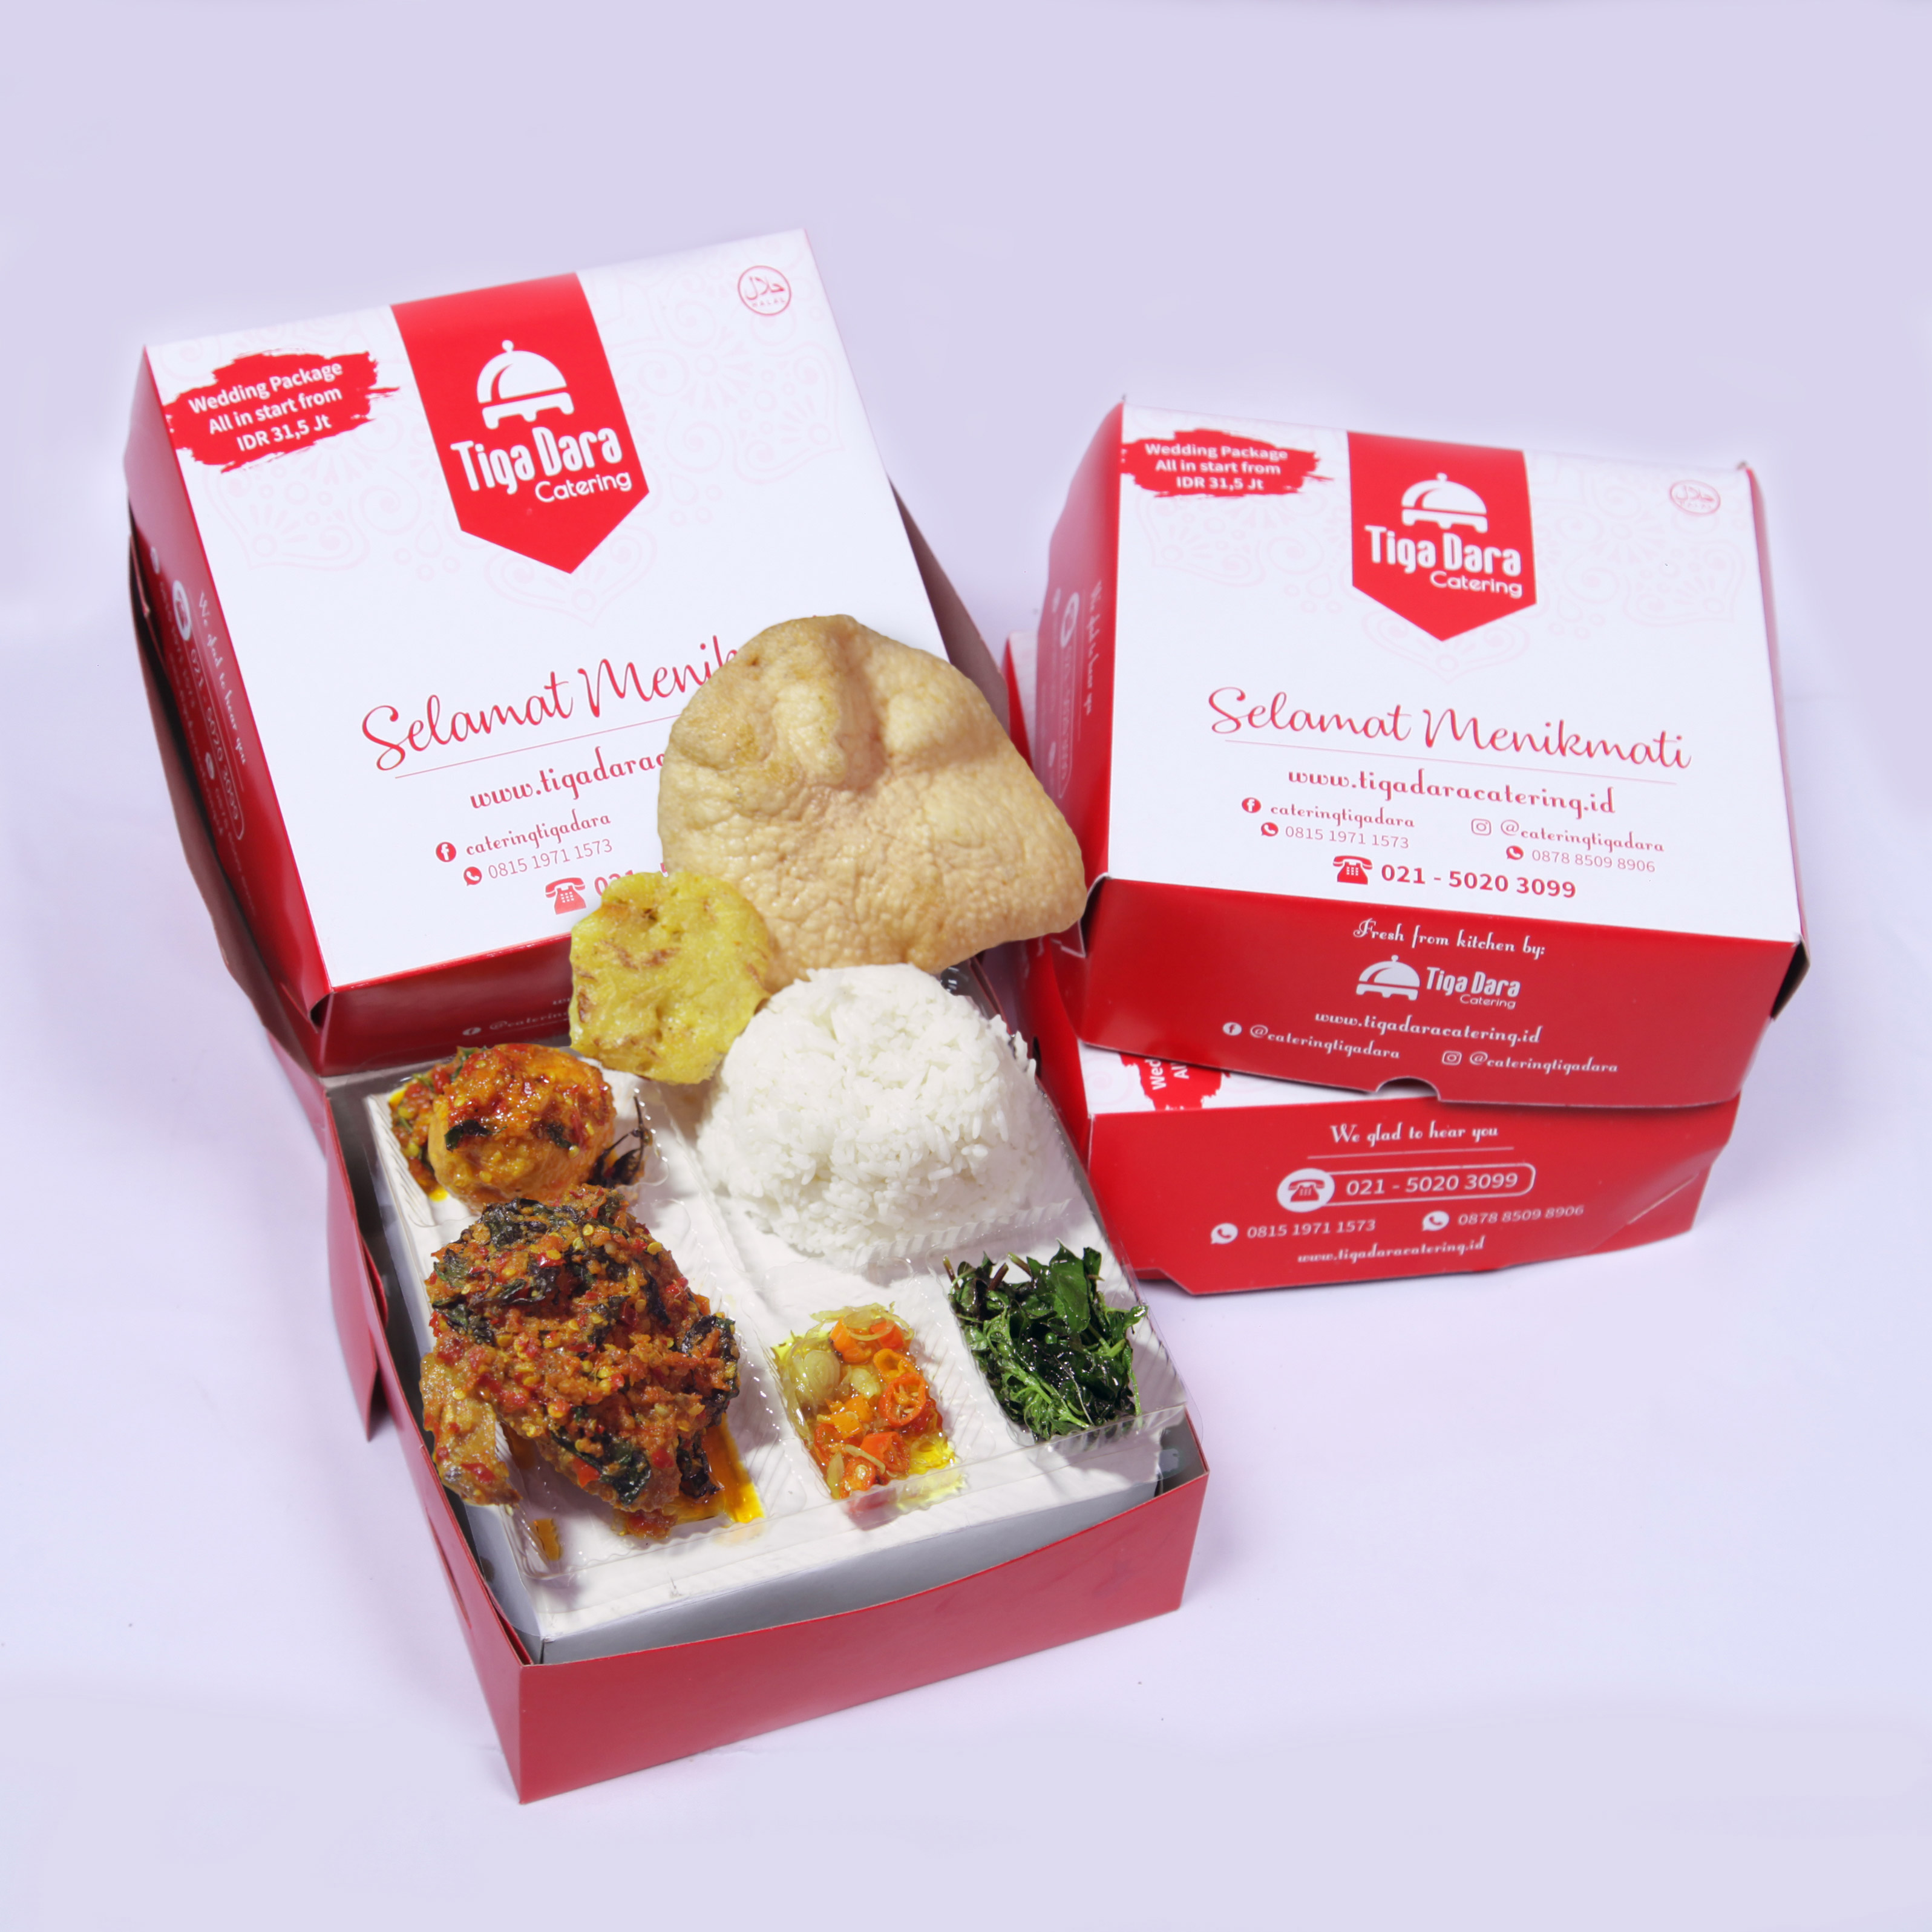 tiga_dara_*Nasi Box_Business Class | Paket 21